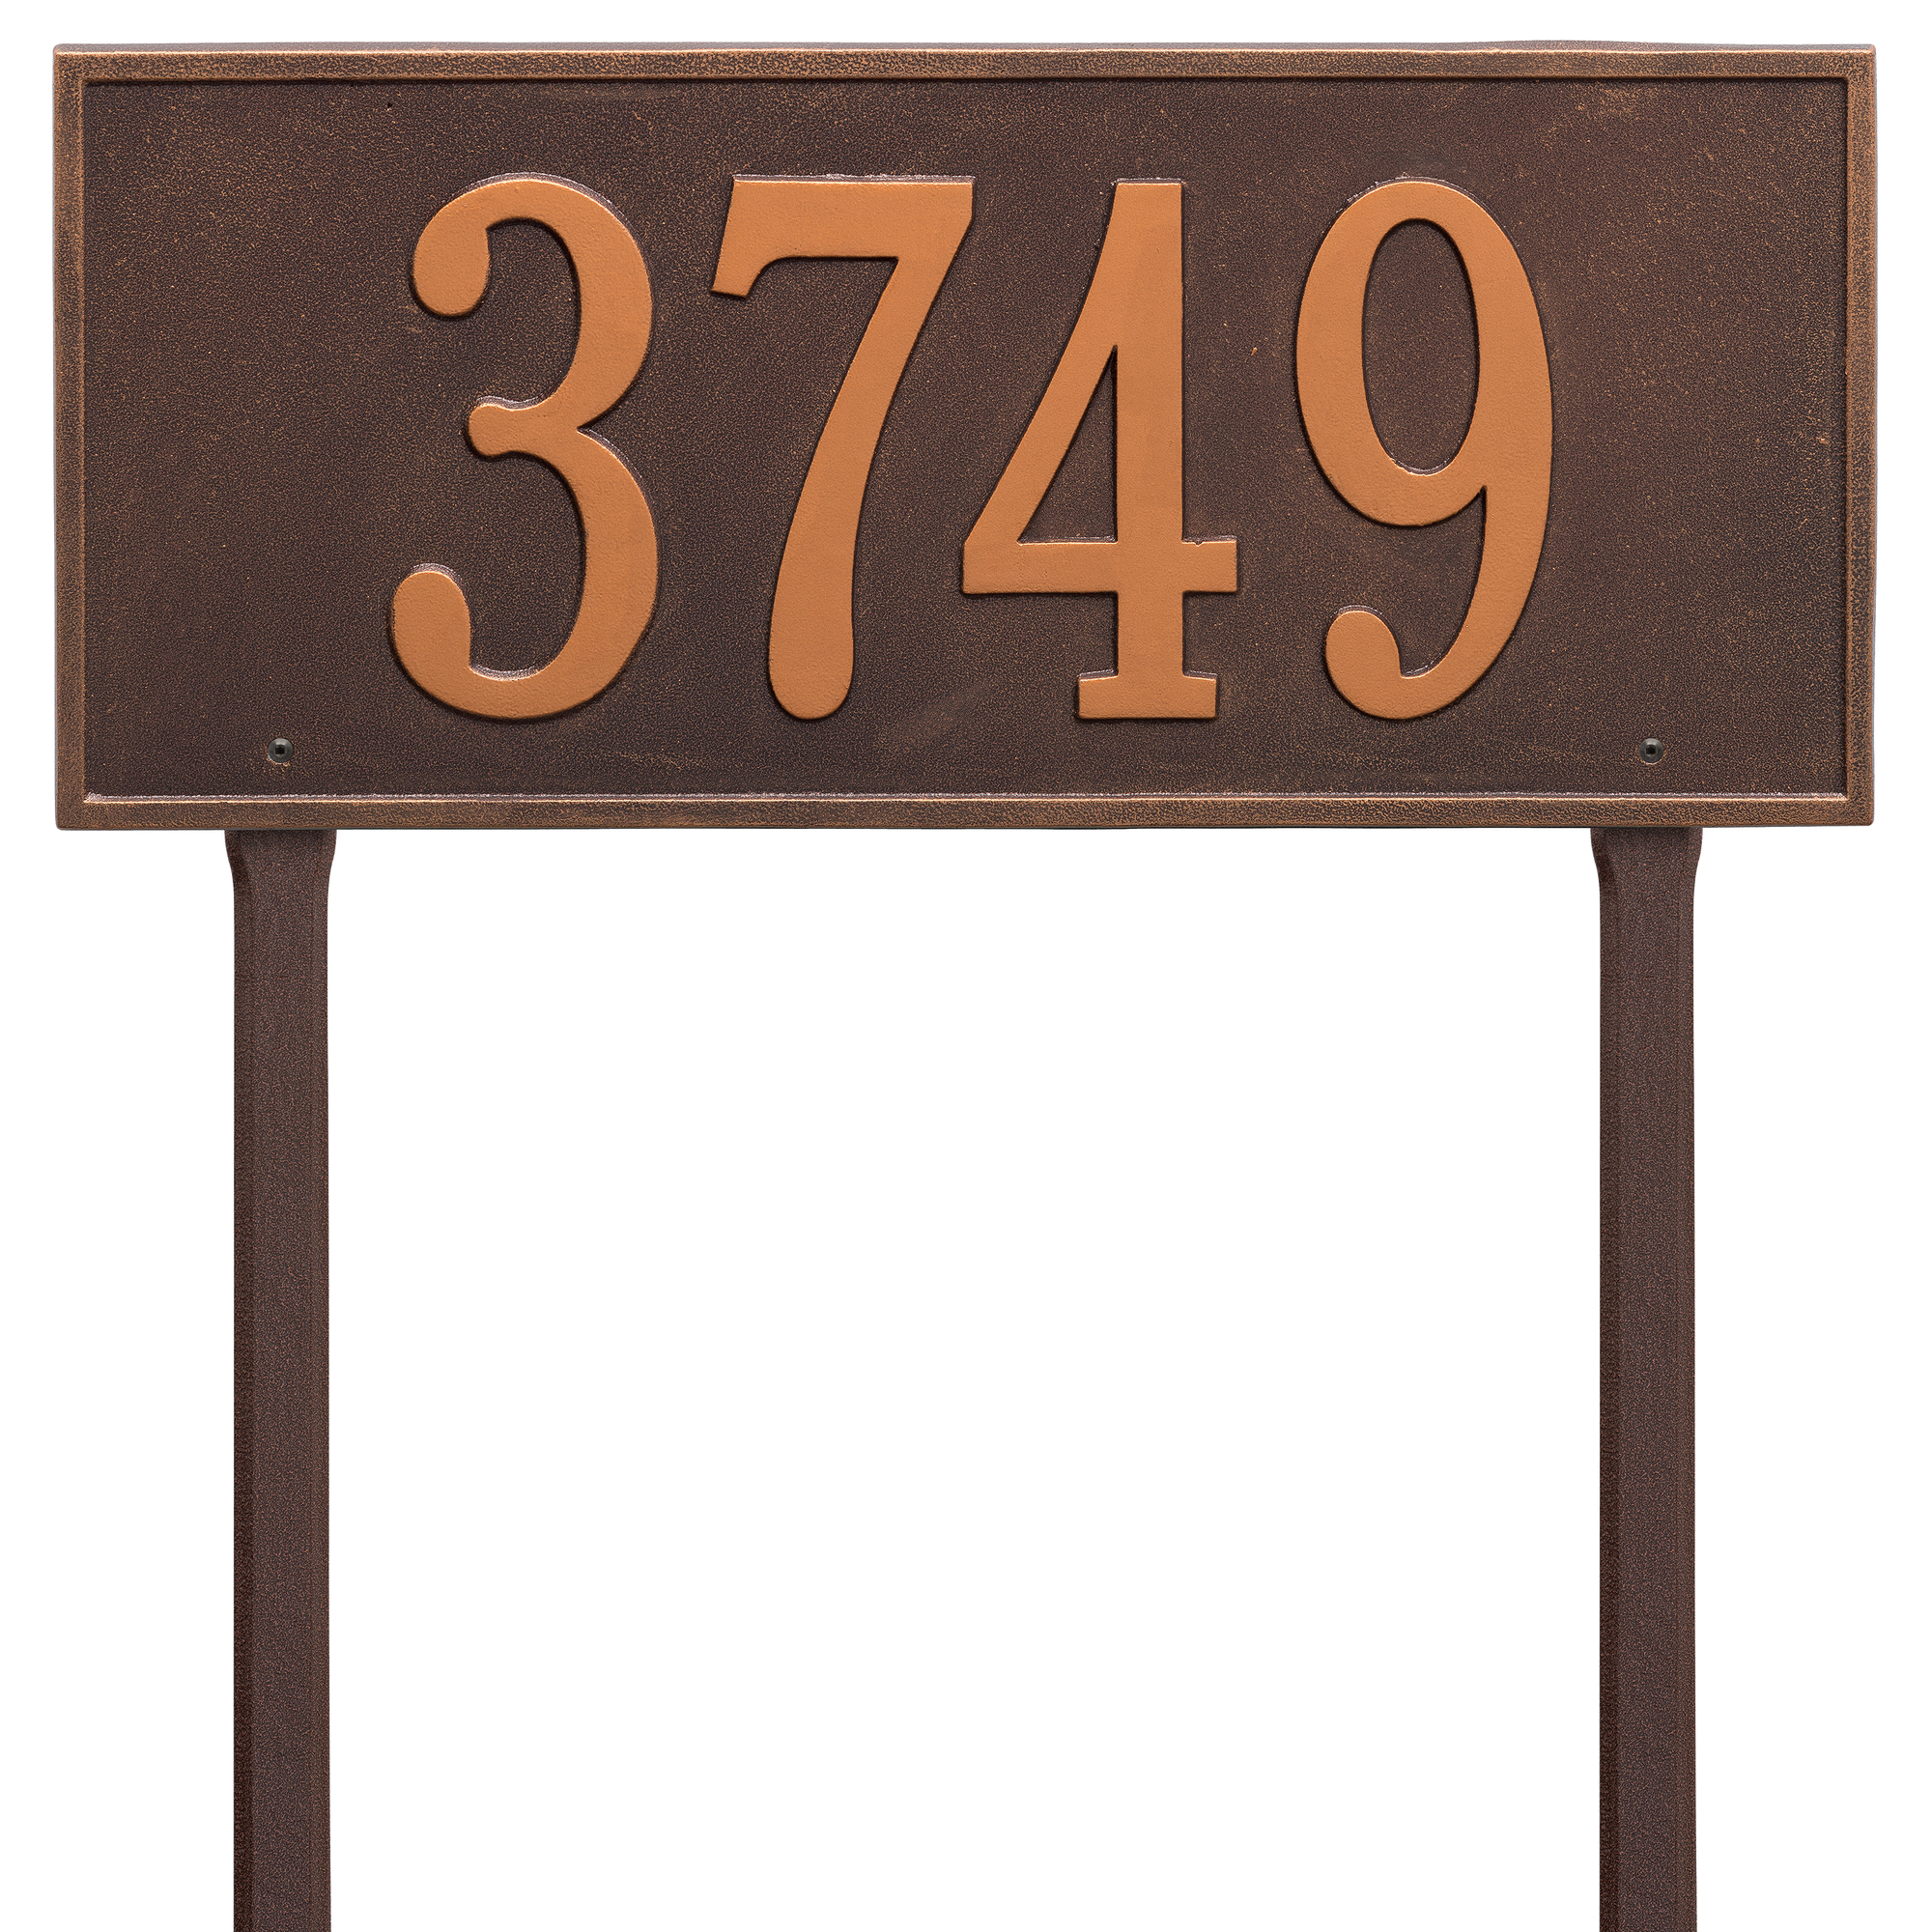 Personalized Whitehall Products Hartford Estate Lawn Address Plaque in Copper